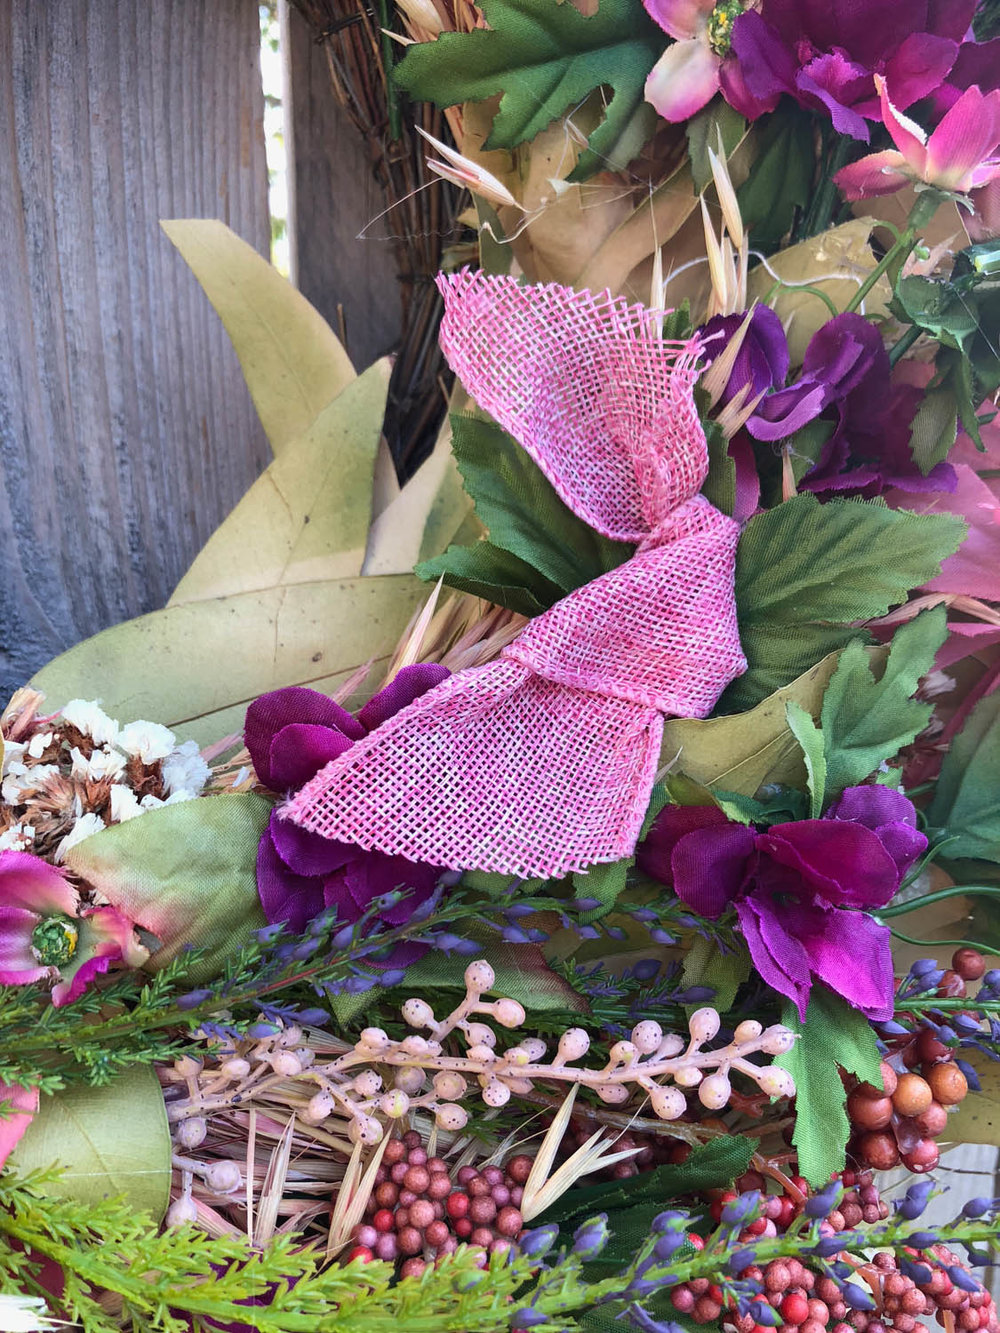 auditioning placement of ribbon on upcycled DIY wreath